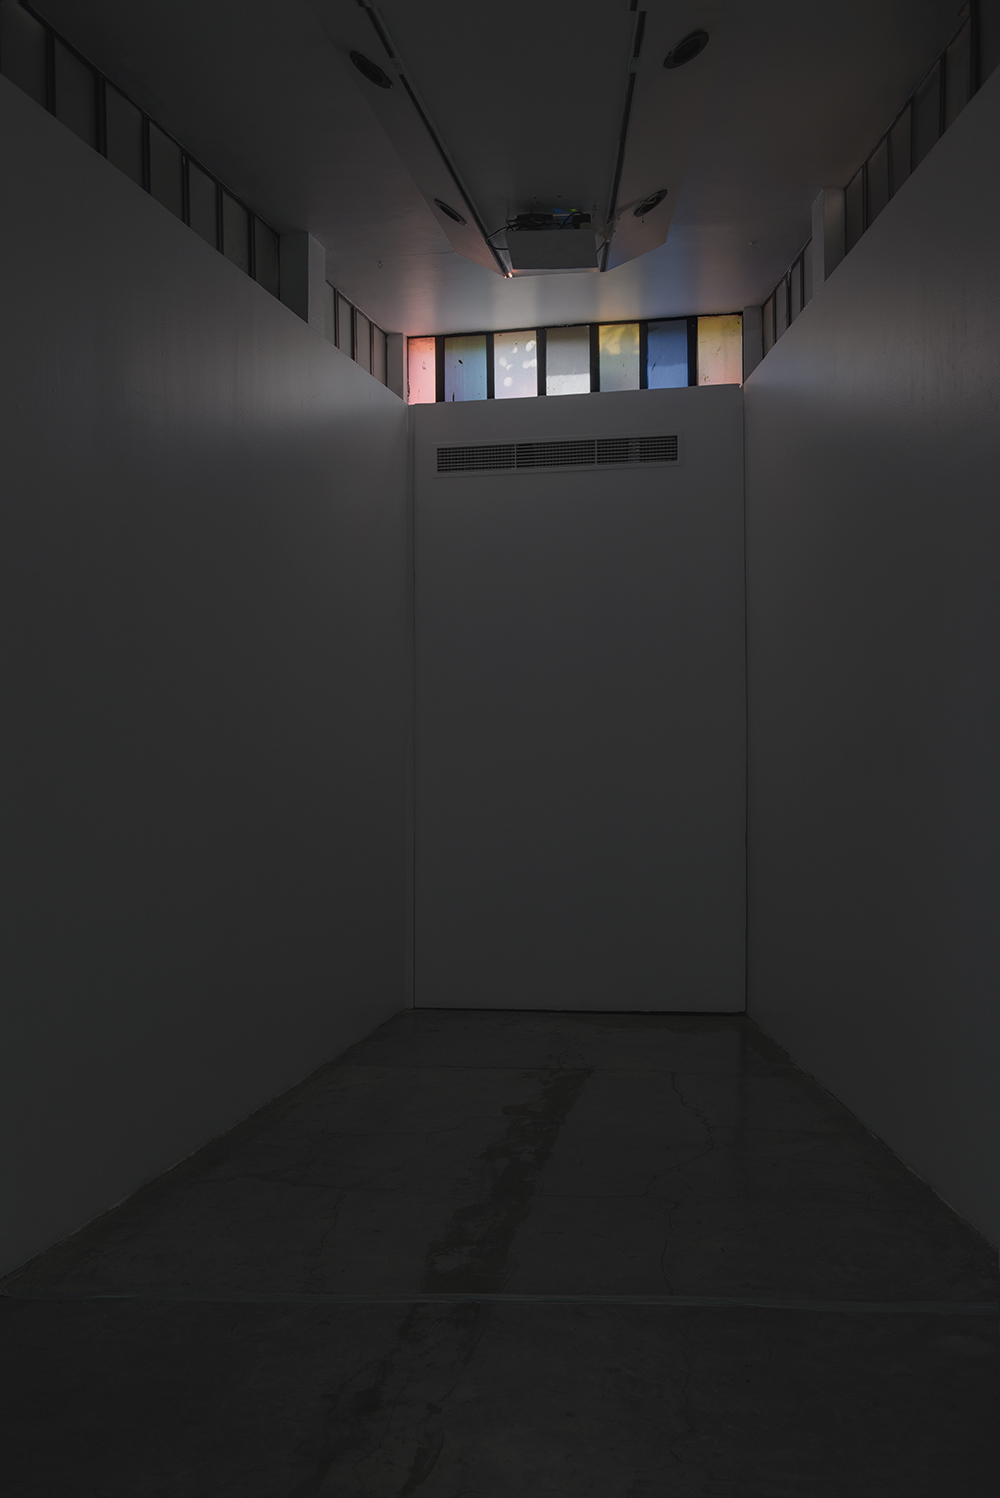 La terquedad de las cosas , 2015.  Site Specific Video installation at El Eco museum, Mexico City.